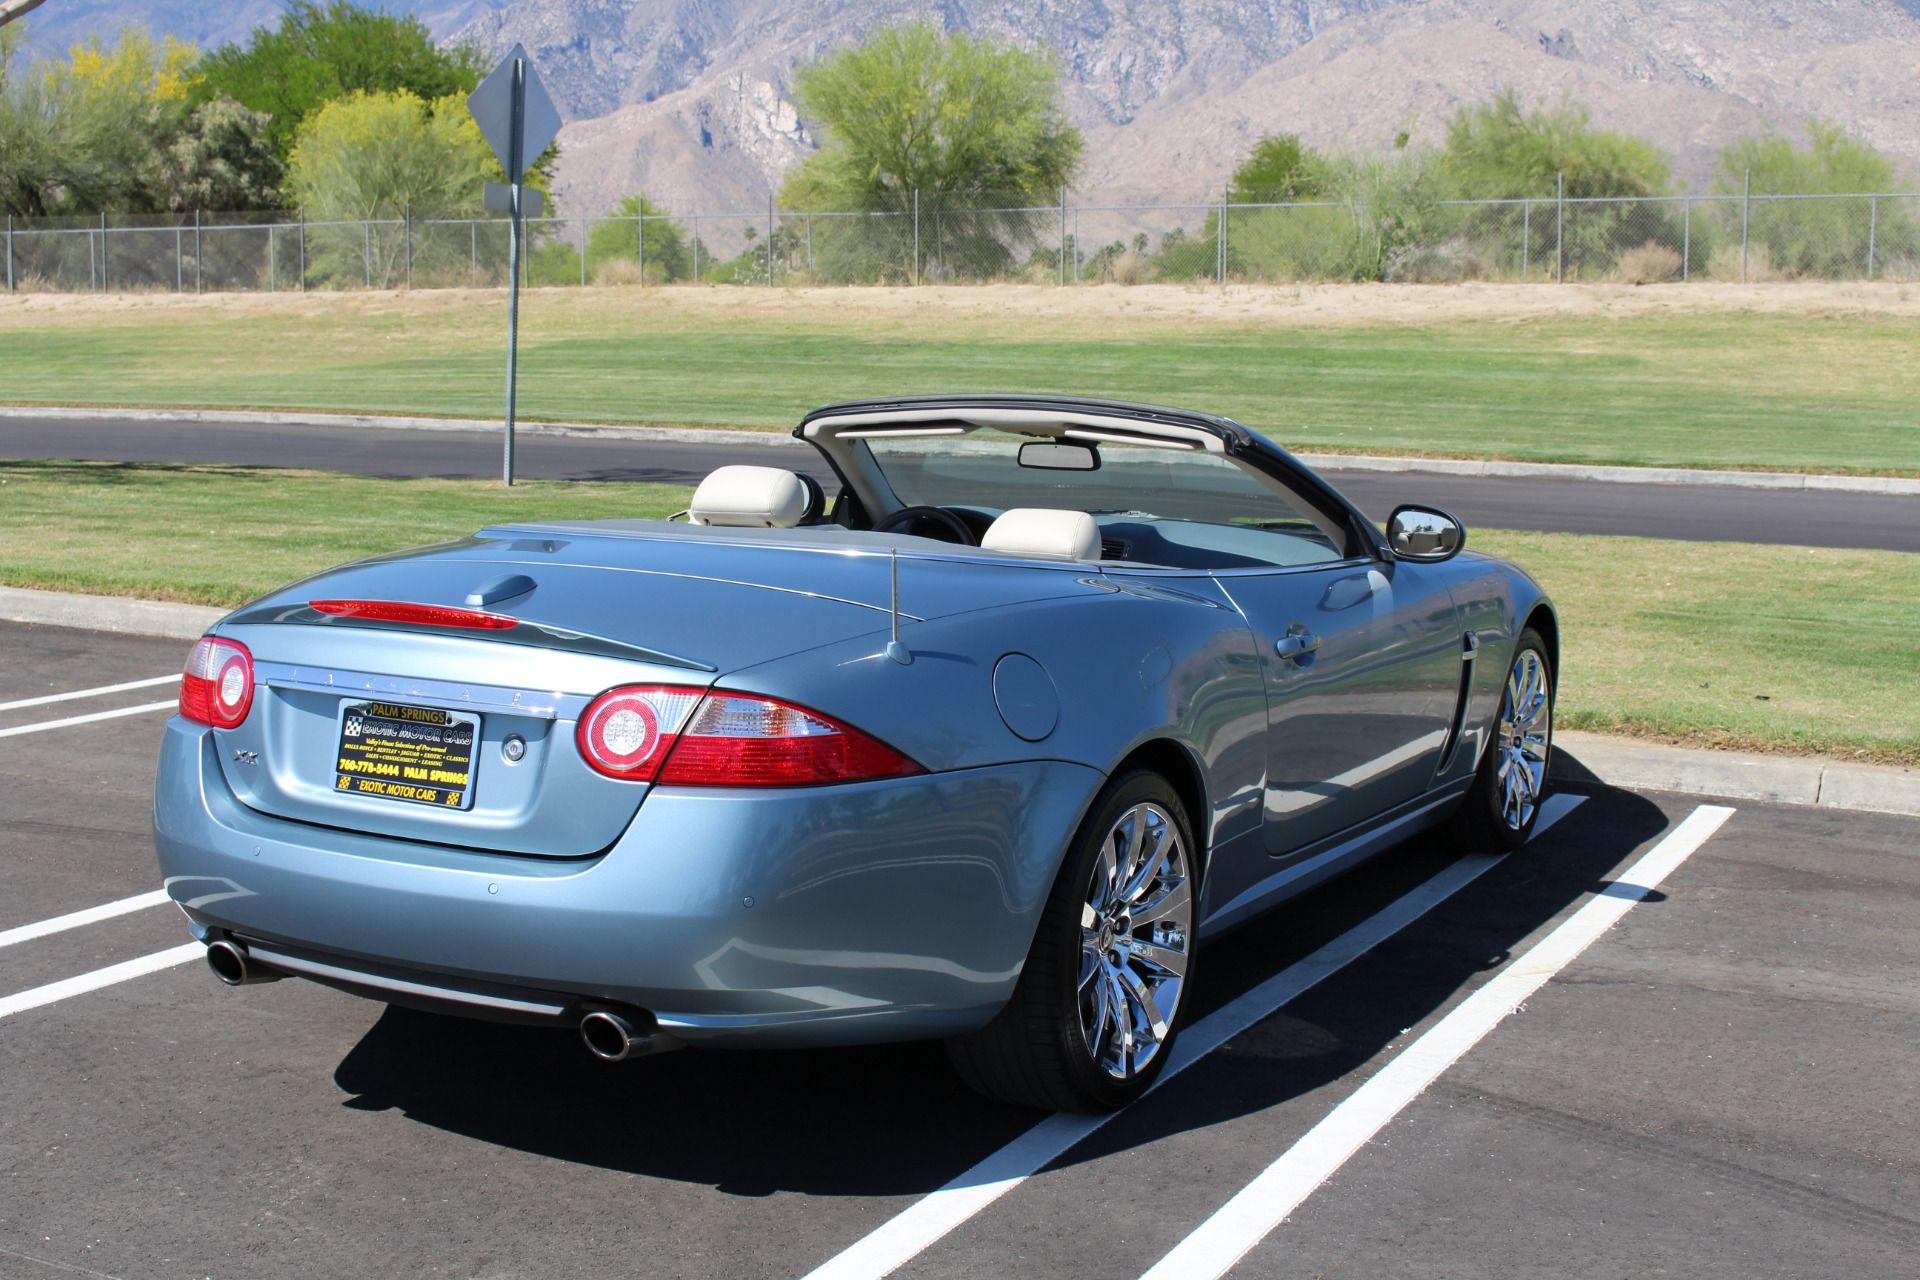 pearl sale img jaguar ivory for york anthracite black hide convertible used cars xkr xk copy